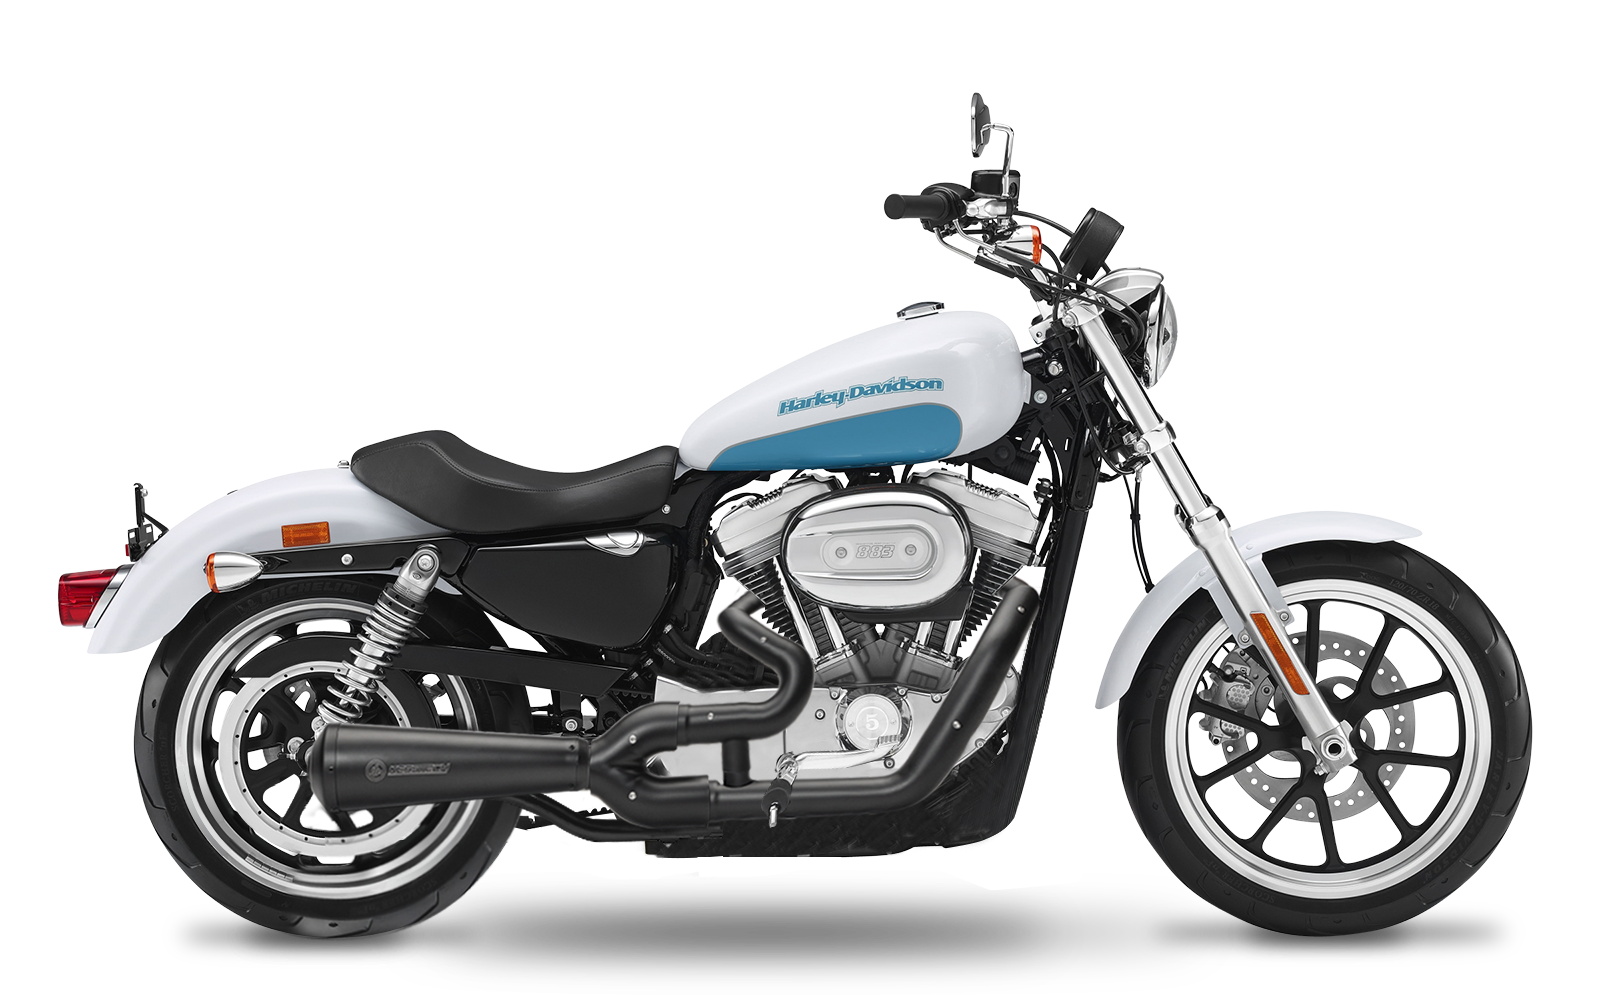 Sportster - Superlow - XL - 2017-2020 - Complete systems non adjustable